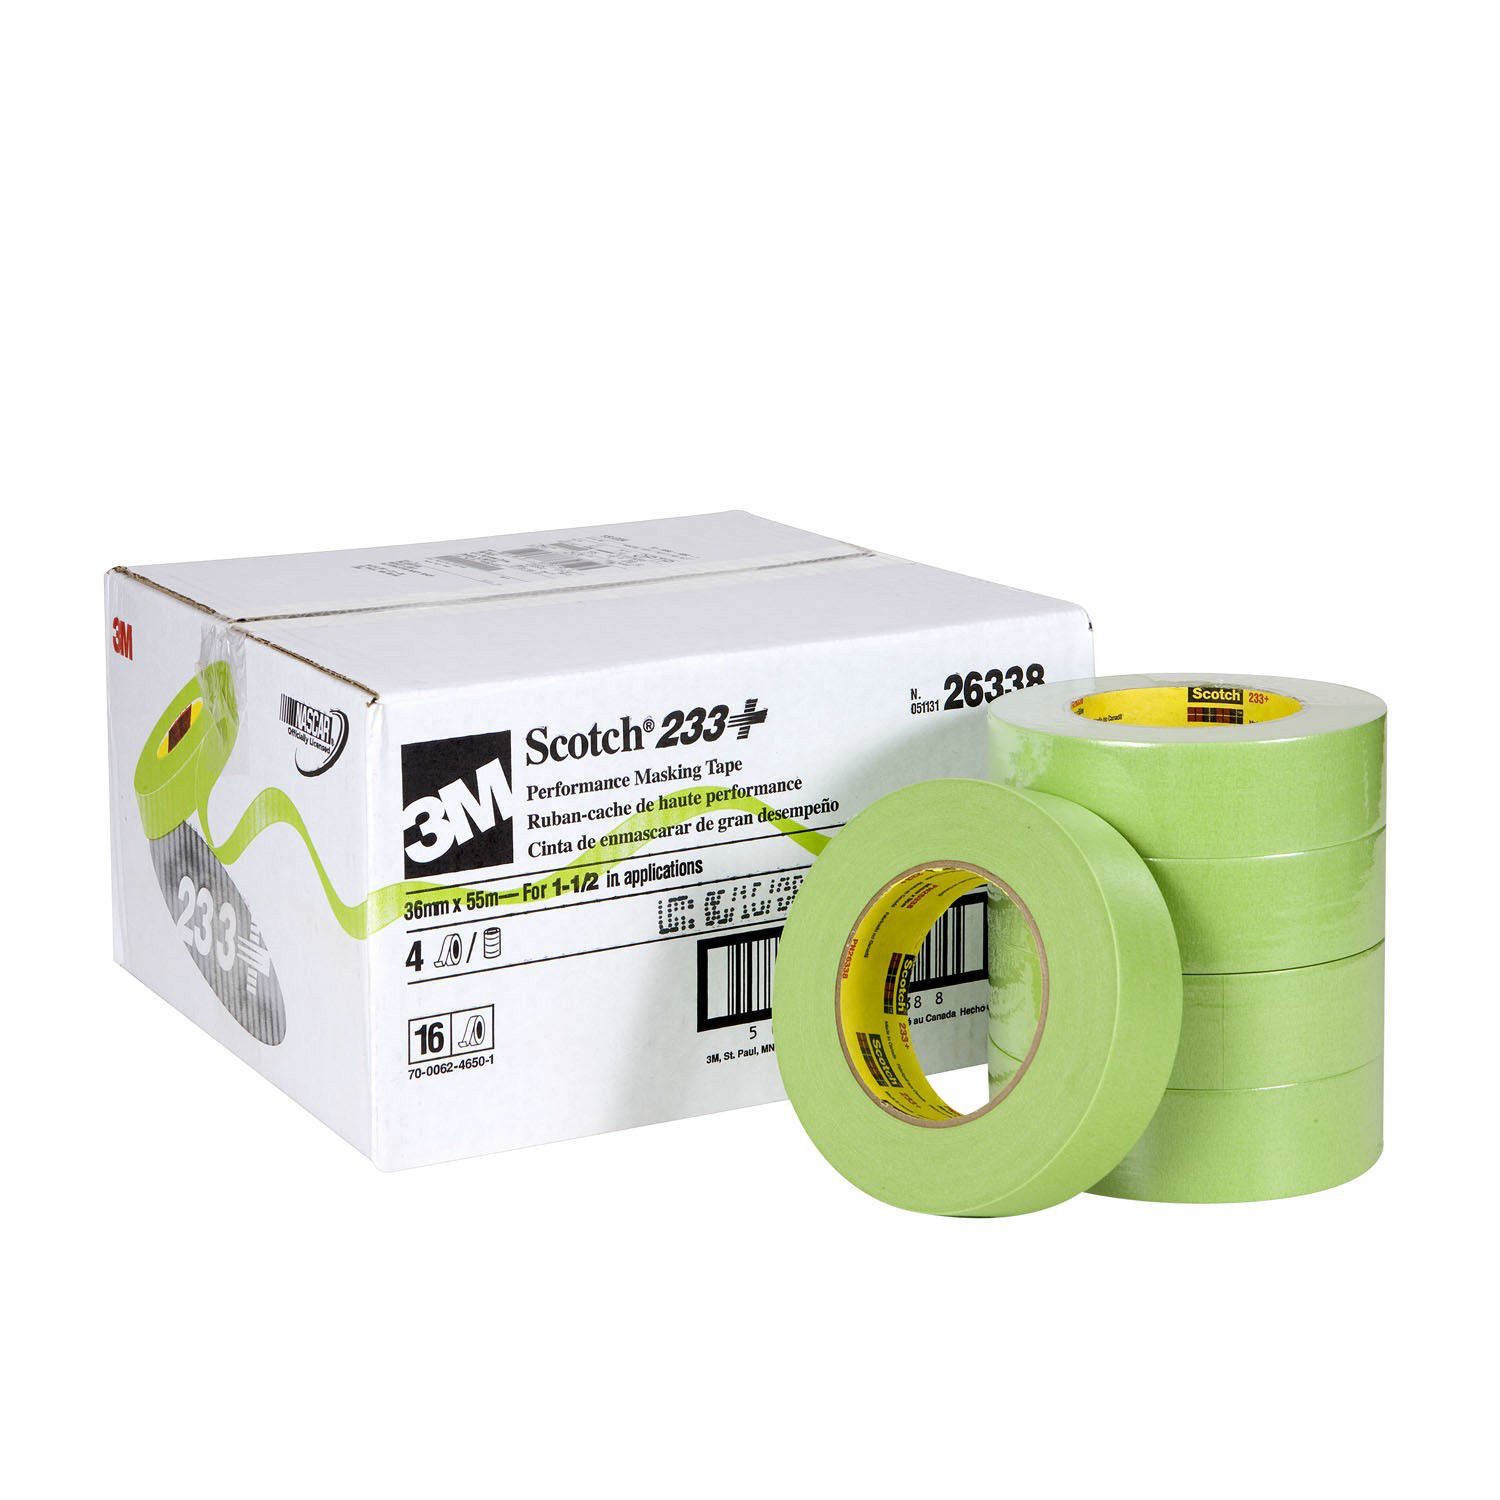 3M 26338 Scotch Performance 1-1 2  Green Masking Tape 233+ 16 rolls Made in USA